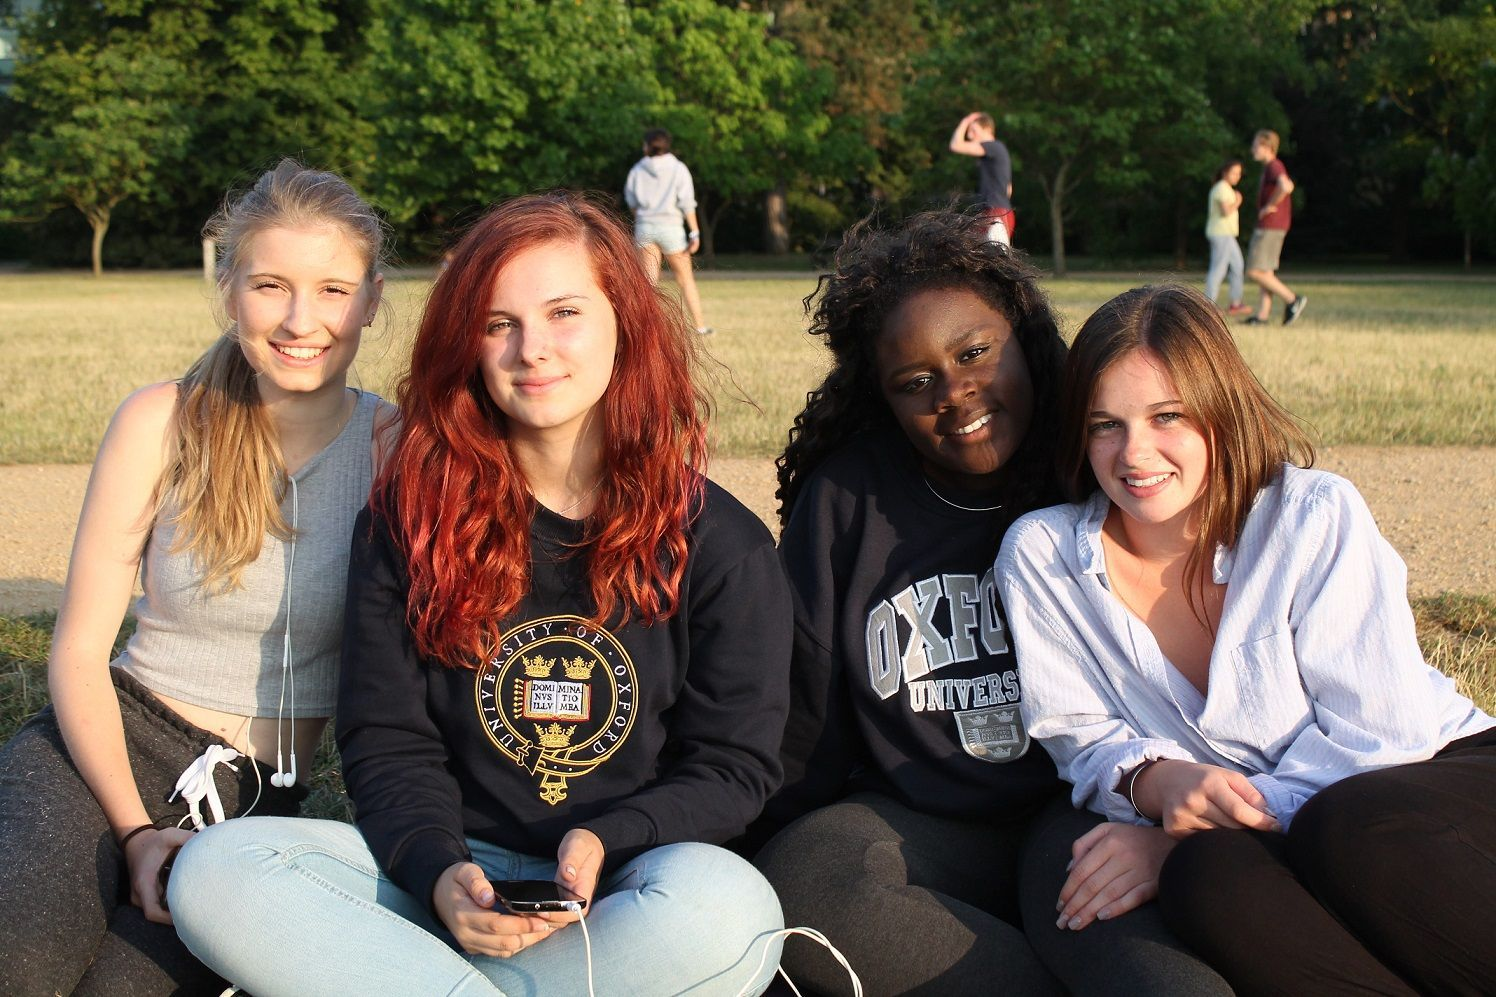 4 students take a break from studying for their Oxford or Cambridge Admissions tests